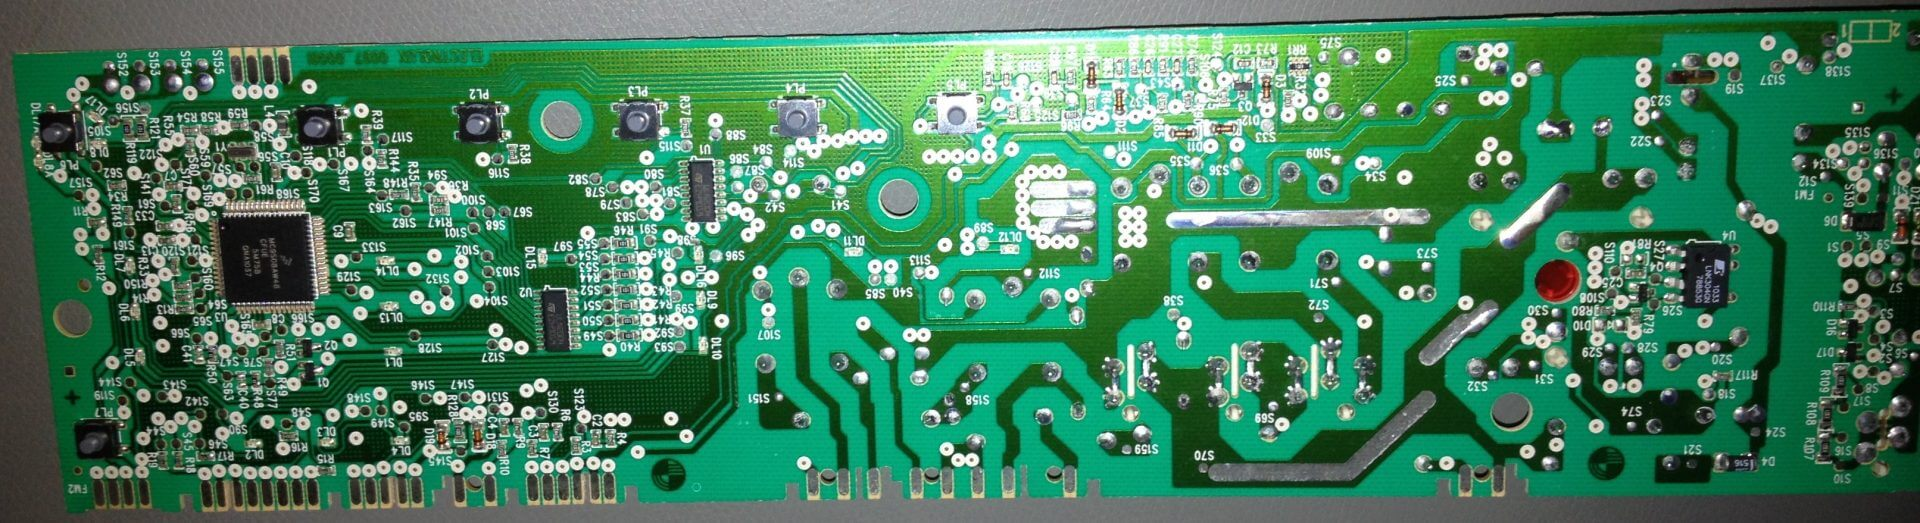 Printed Circuit Board Assembly Pcb